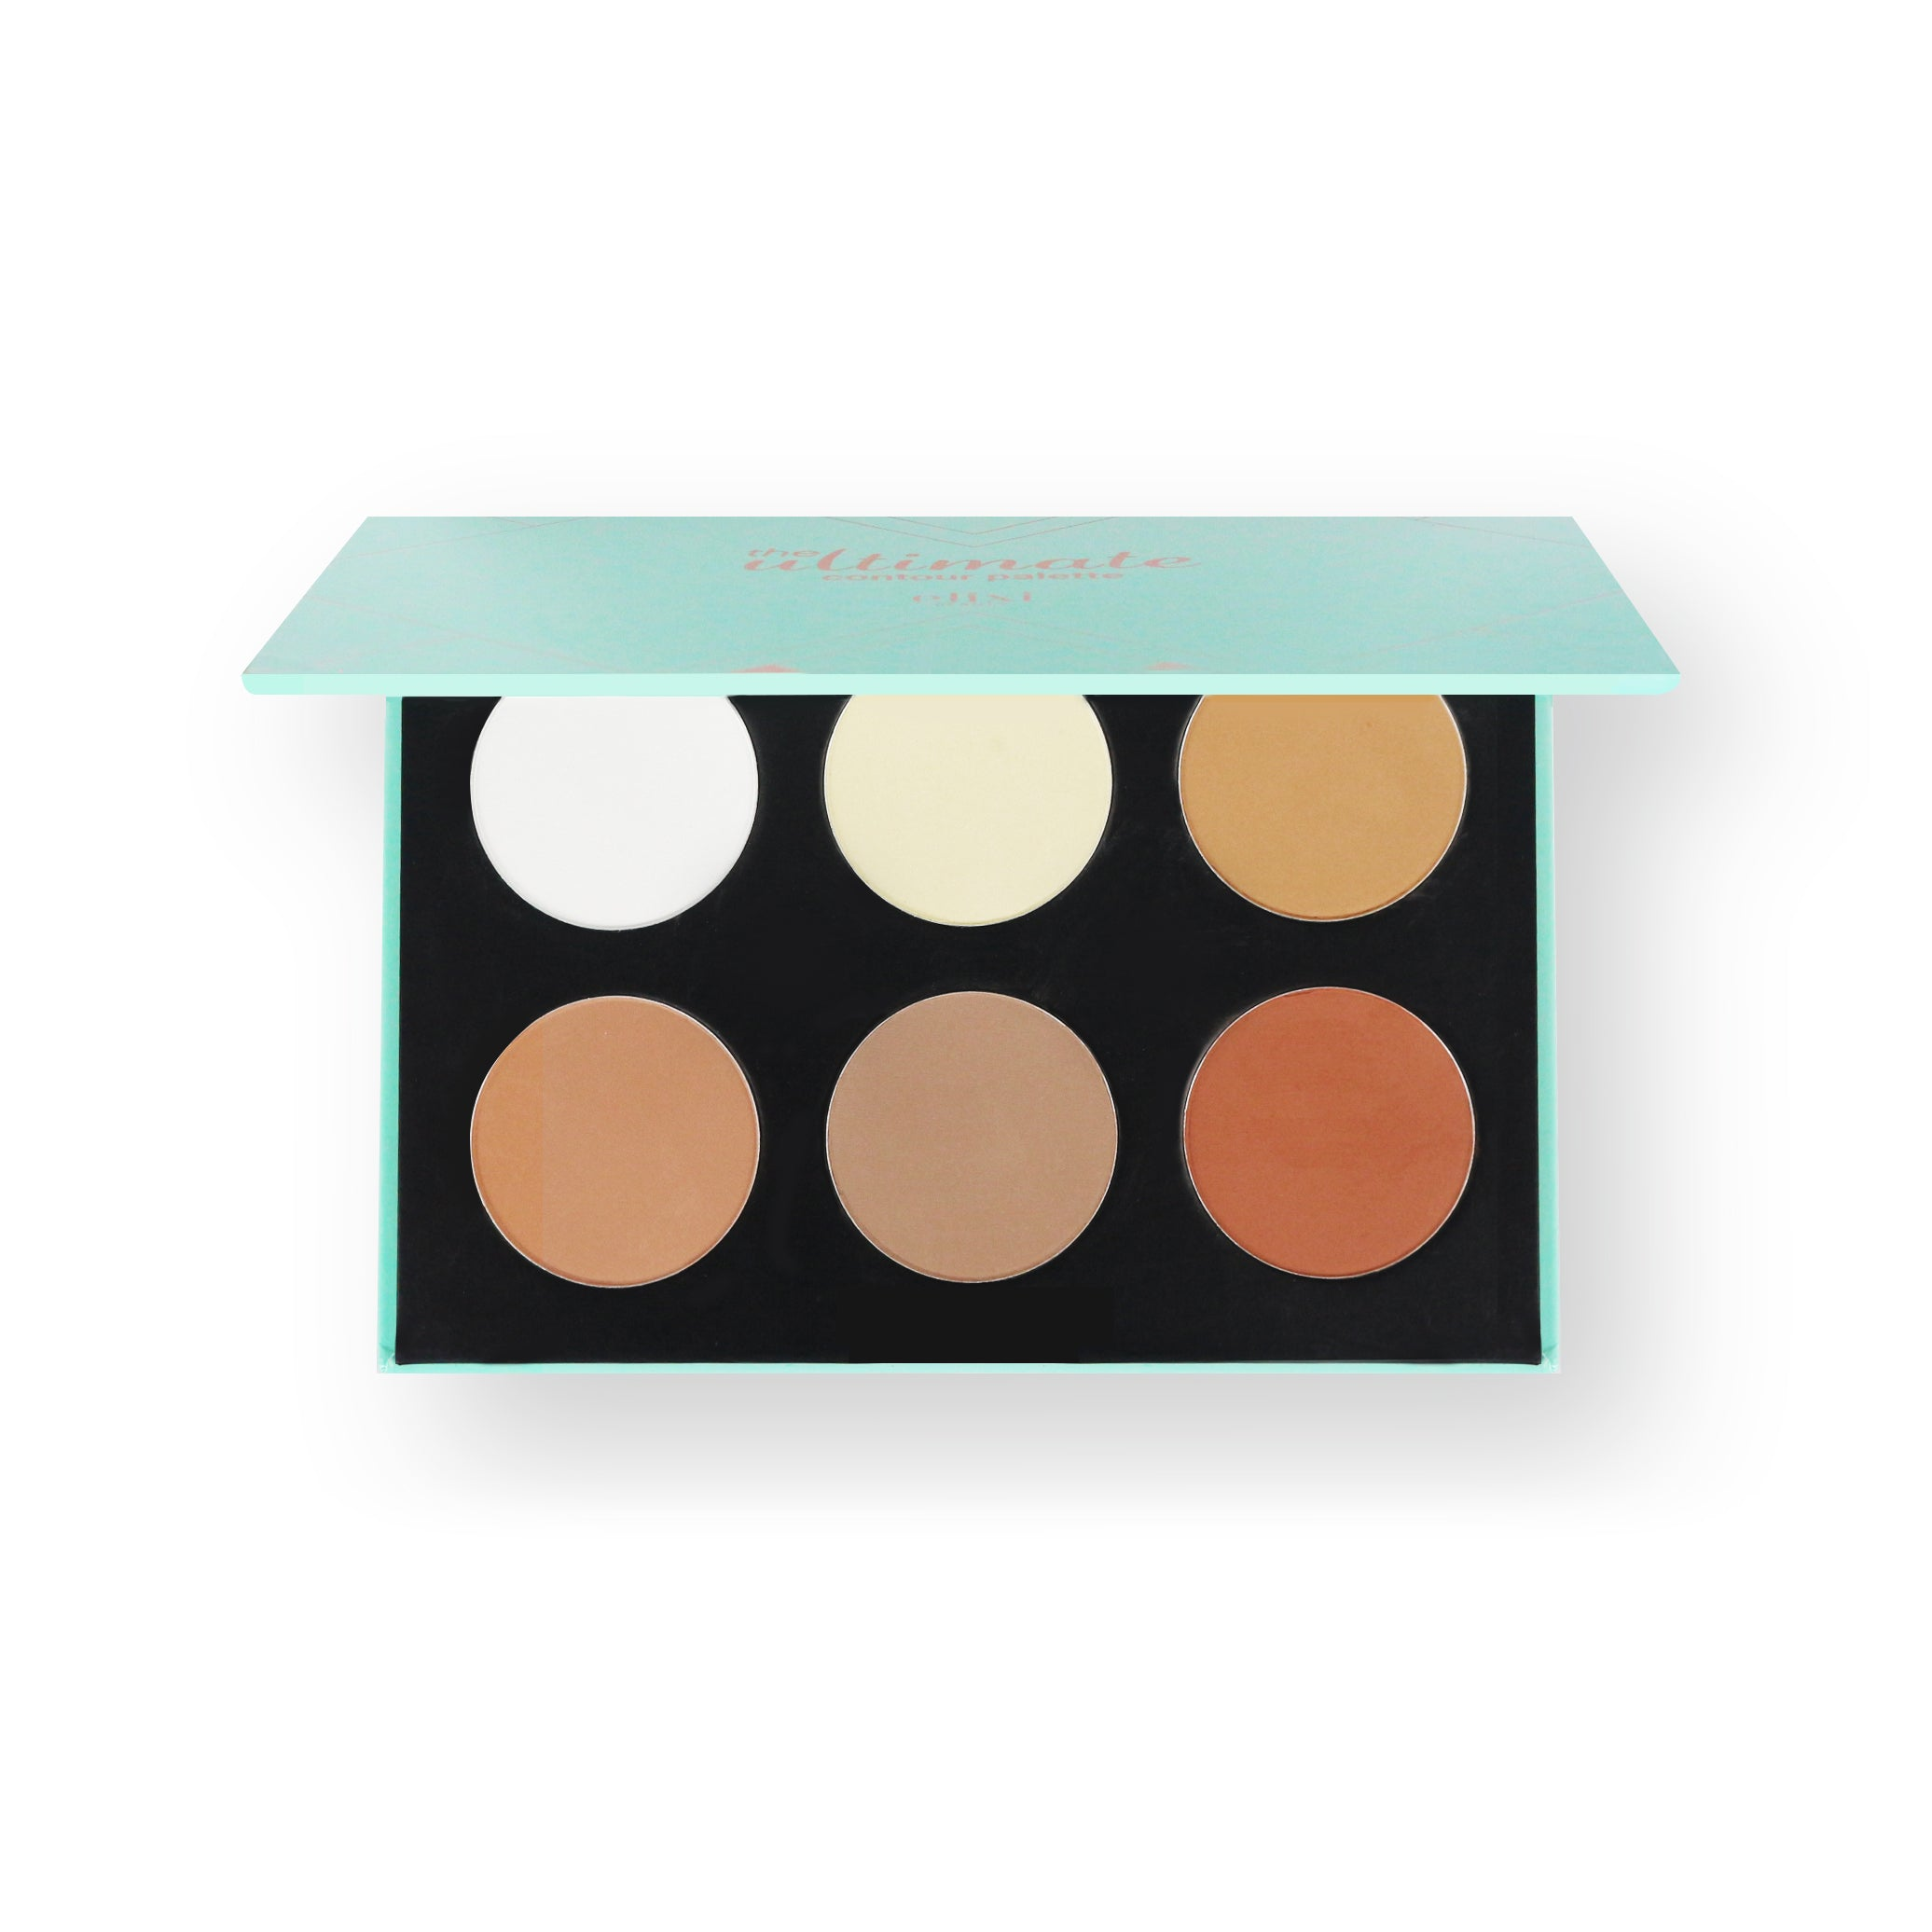 Elixi Beauty 'The Ultimate Contour Palette' (Powder)